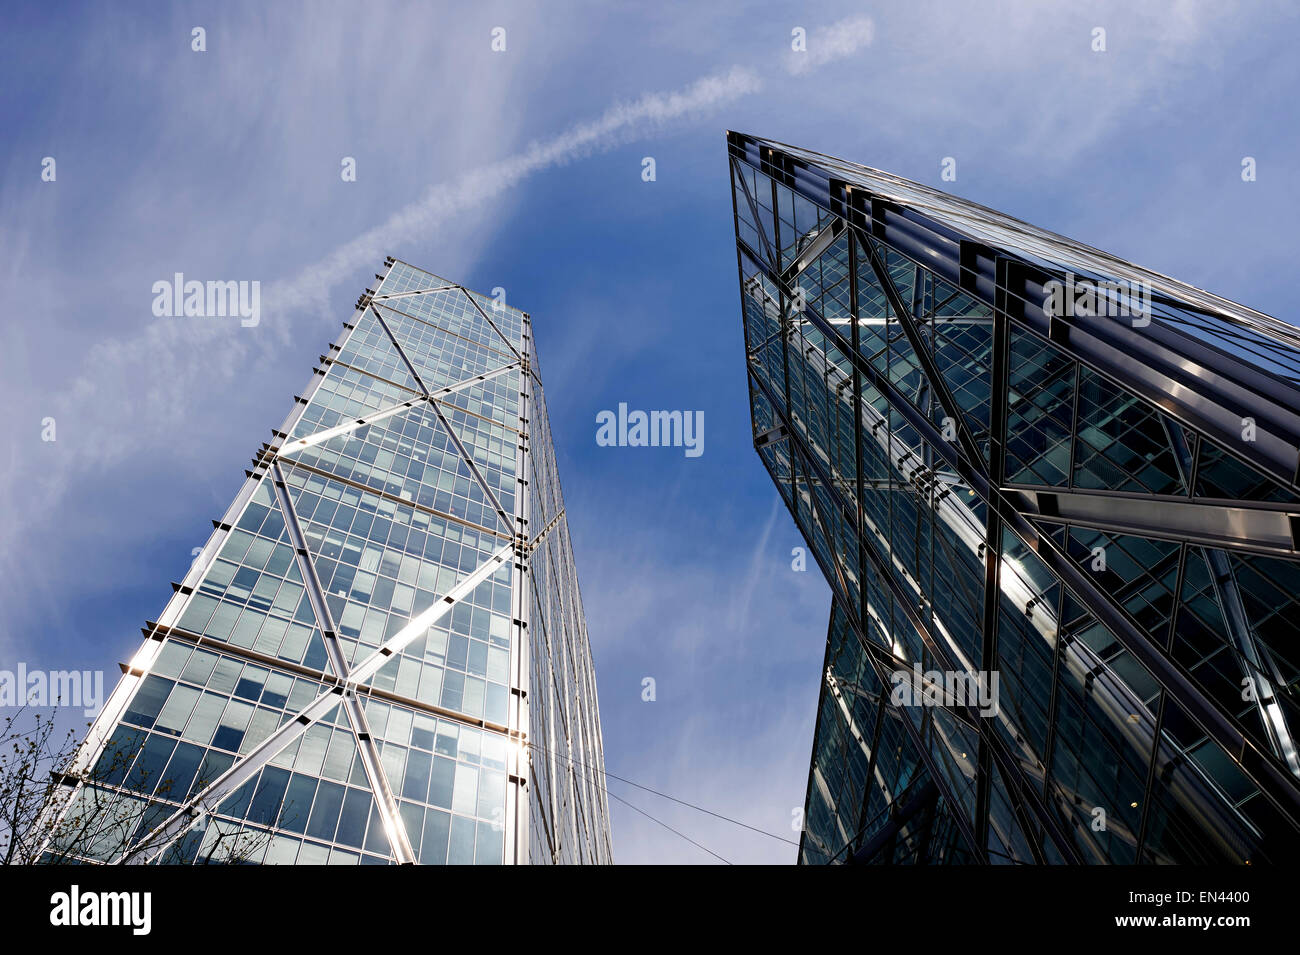 Broadgate Tower, Modern architecture in the Broadgate area, City of London, UK - Stock Image